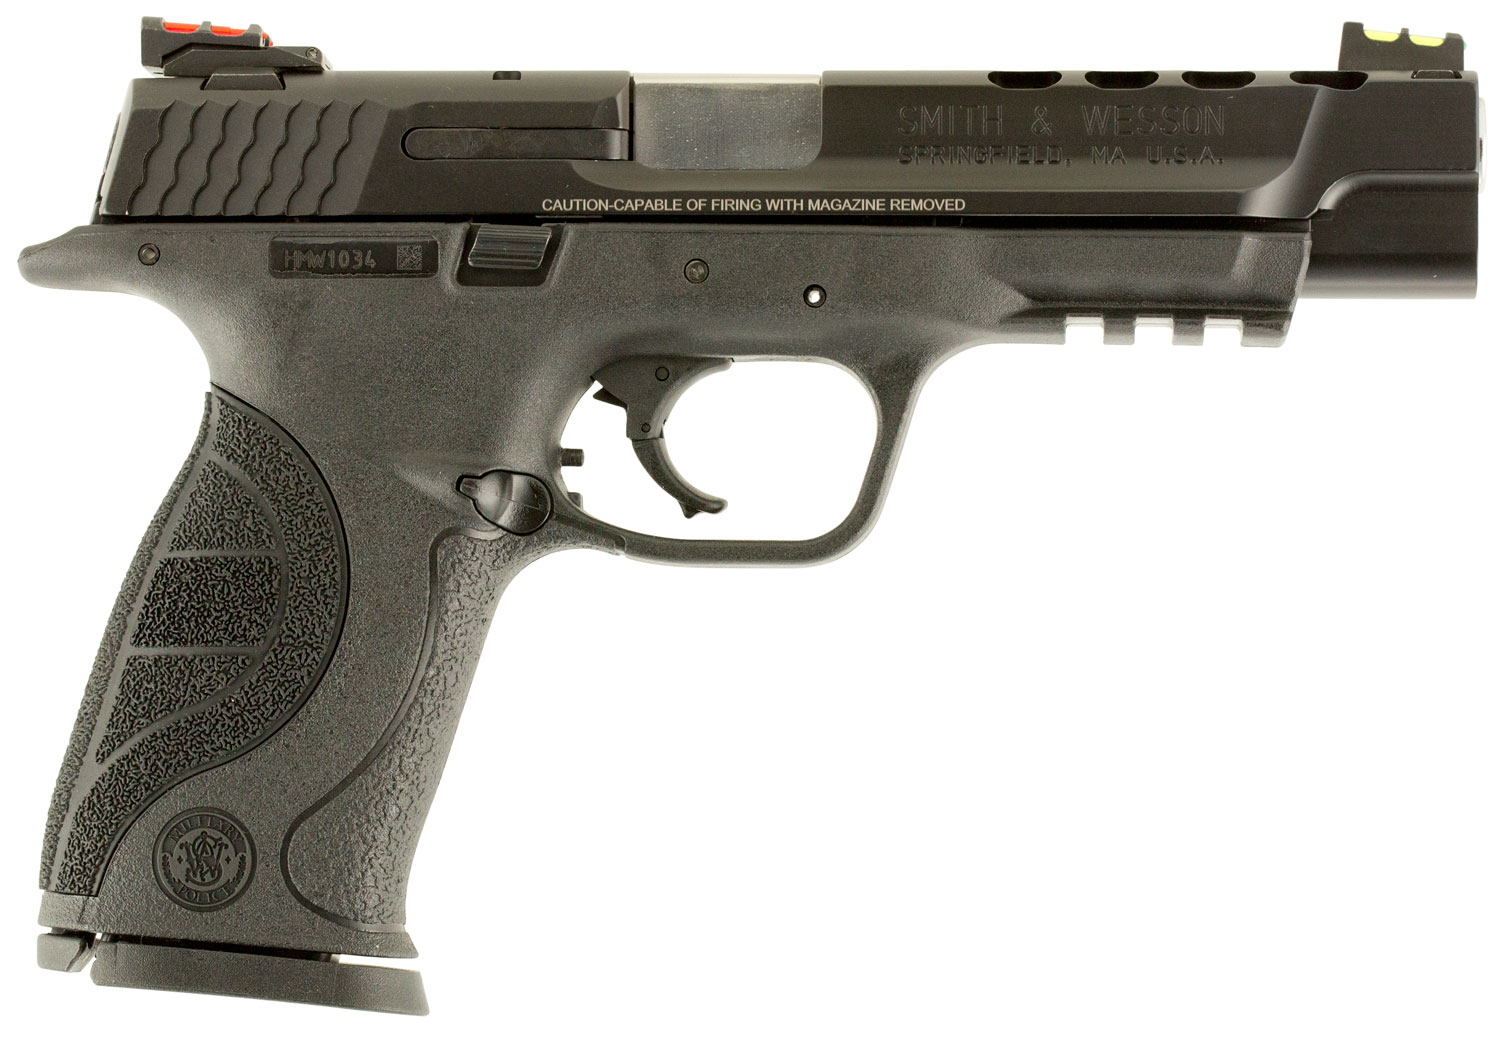 Smith & Wesson 10218 M&P 9 Double 9mm Luger 5